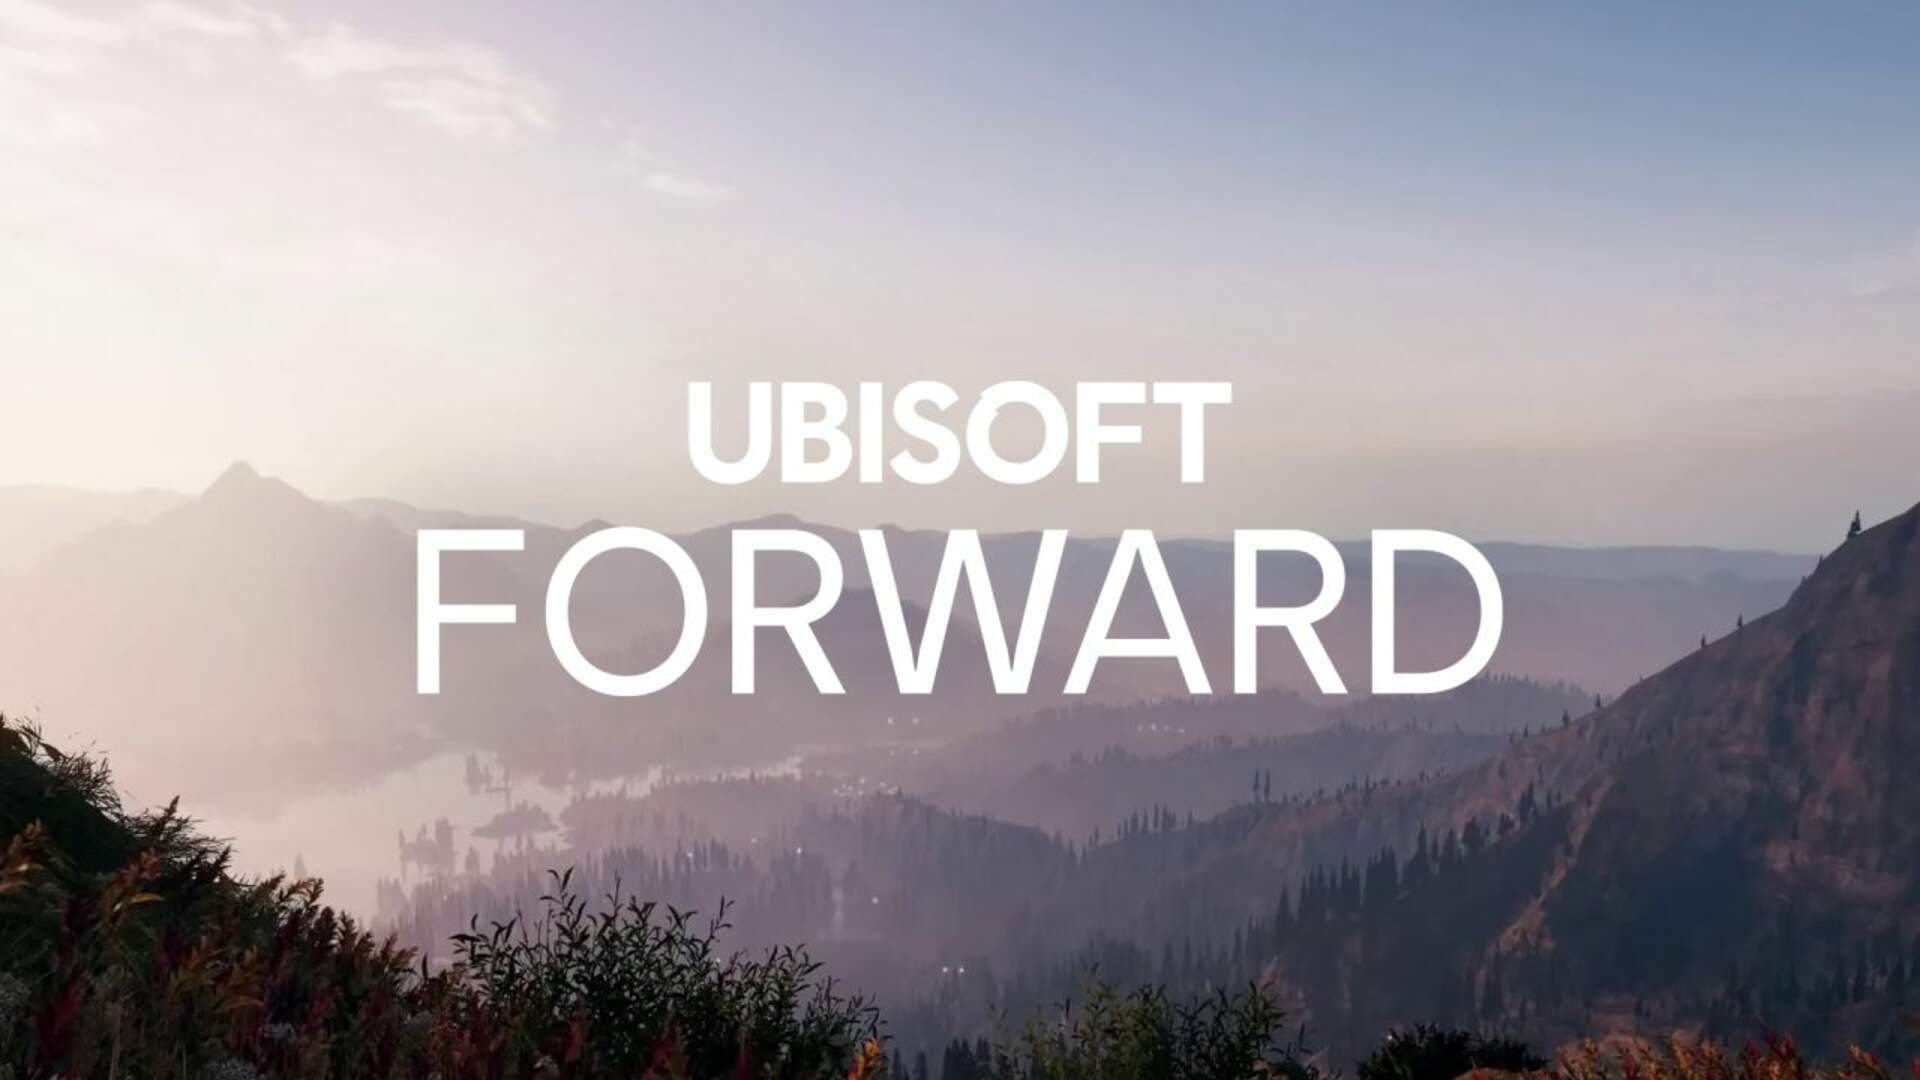 Ubisoft Forward is a New E3-Style Digital Showcase Set for July